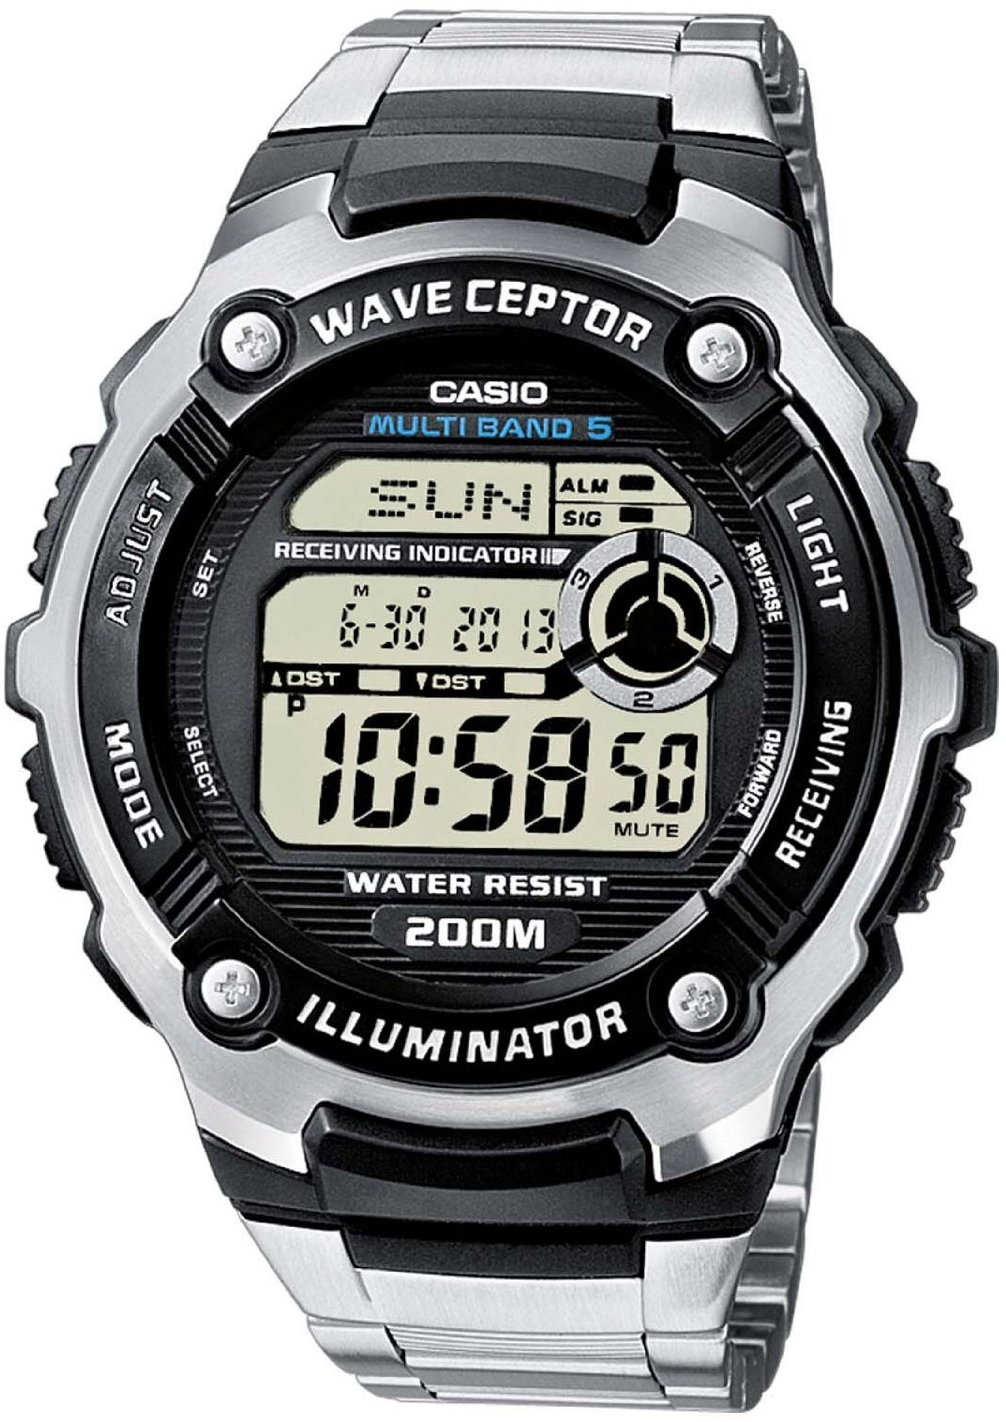 Casio Wave Ceptor WV-200DE-1A куплю wv транспортер 2007 г